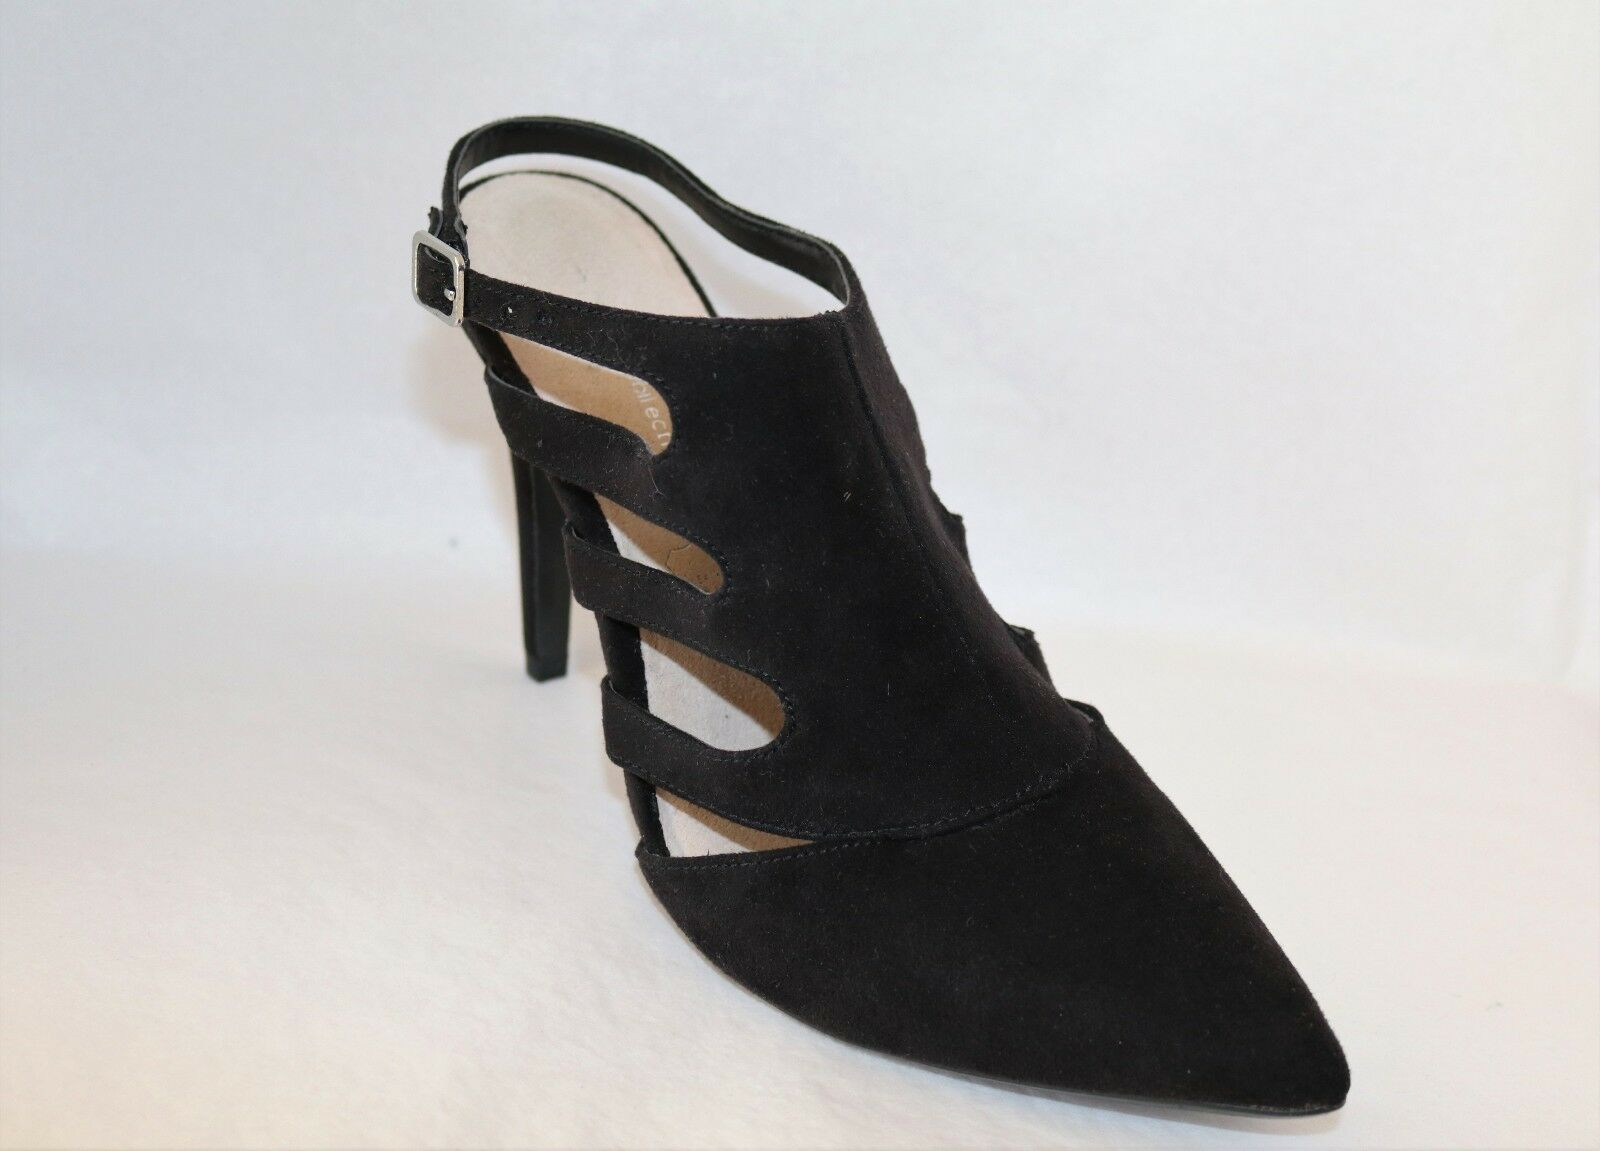 TARGET Brand Black Faux Suede Size Leather Sling Back Heels Size Suede 8 LIKE NEW b7ffe1